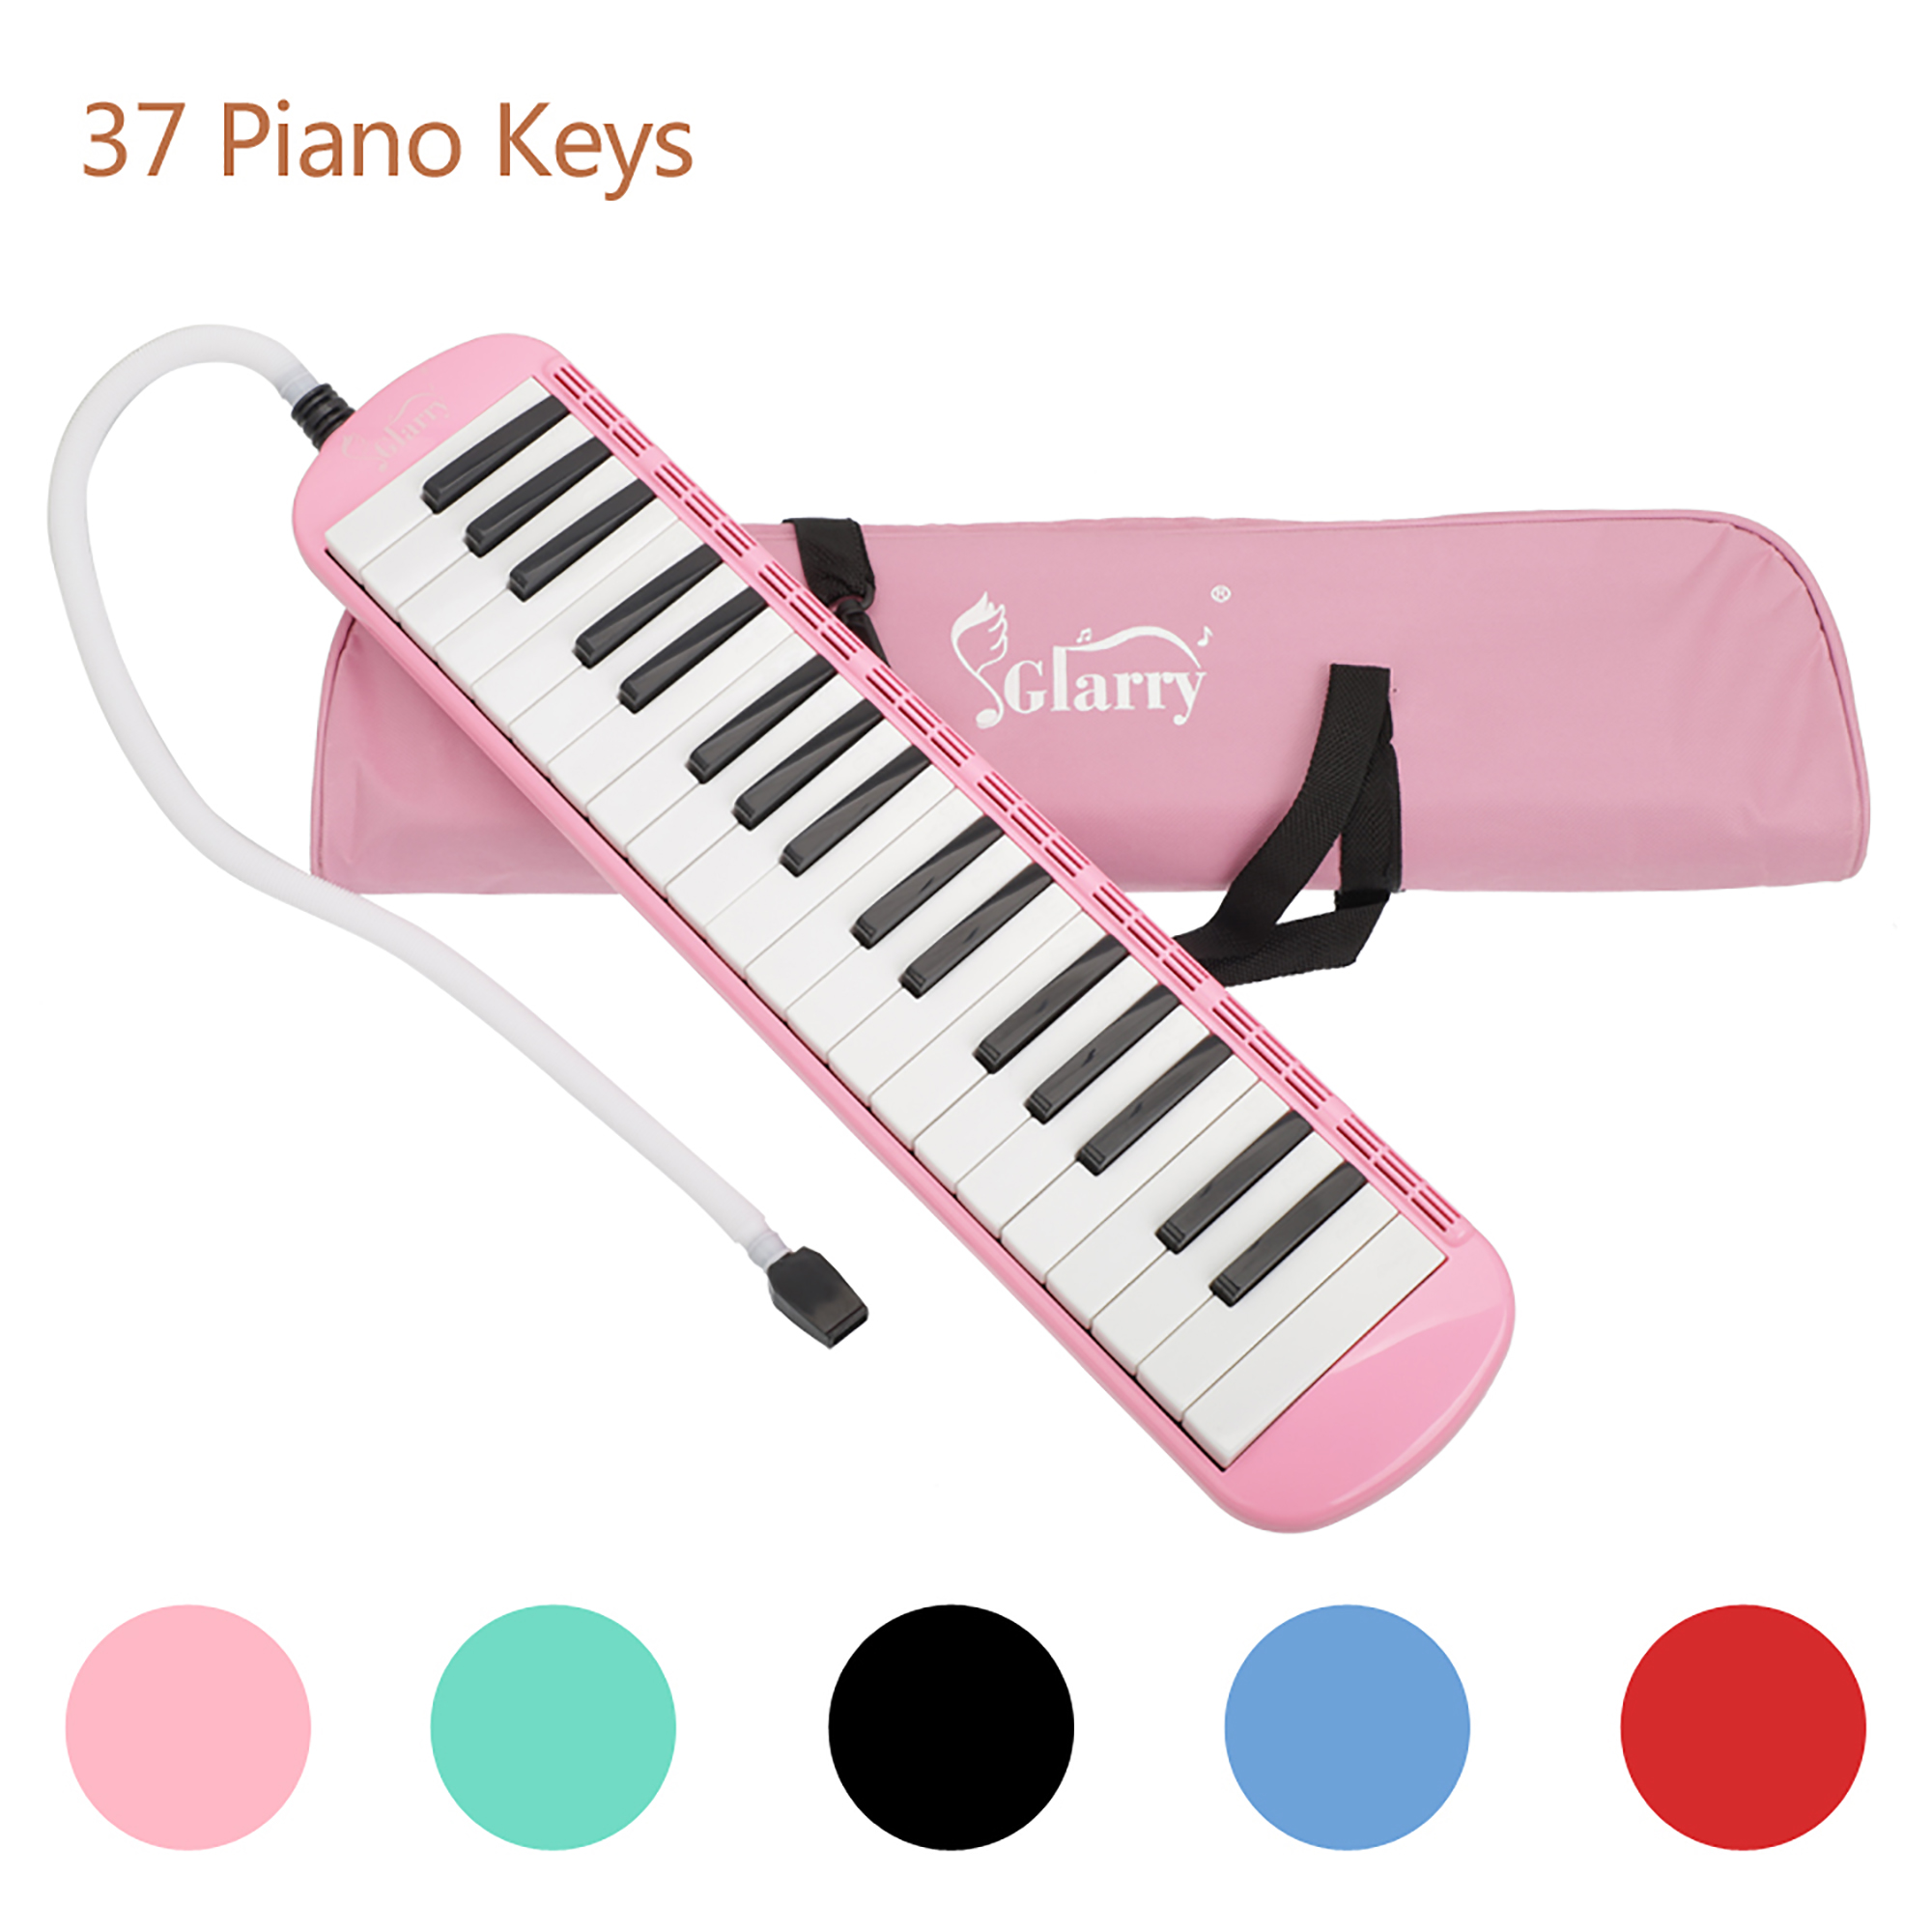 """37"""" Melodica Instrument for Kids, Gift Pink Classic Musical Instrument Piano Keys Melodica For Music Lovers, Beginners Gift with Carrying Bag Organ"""